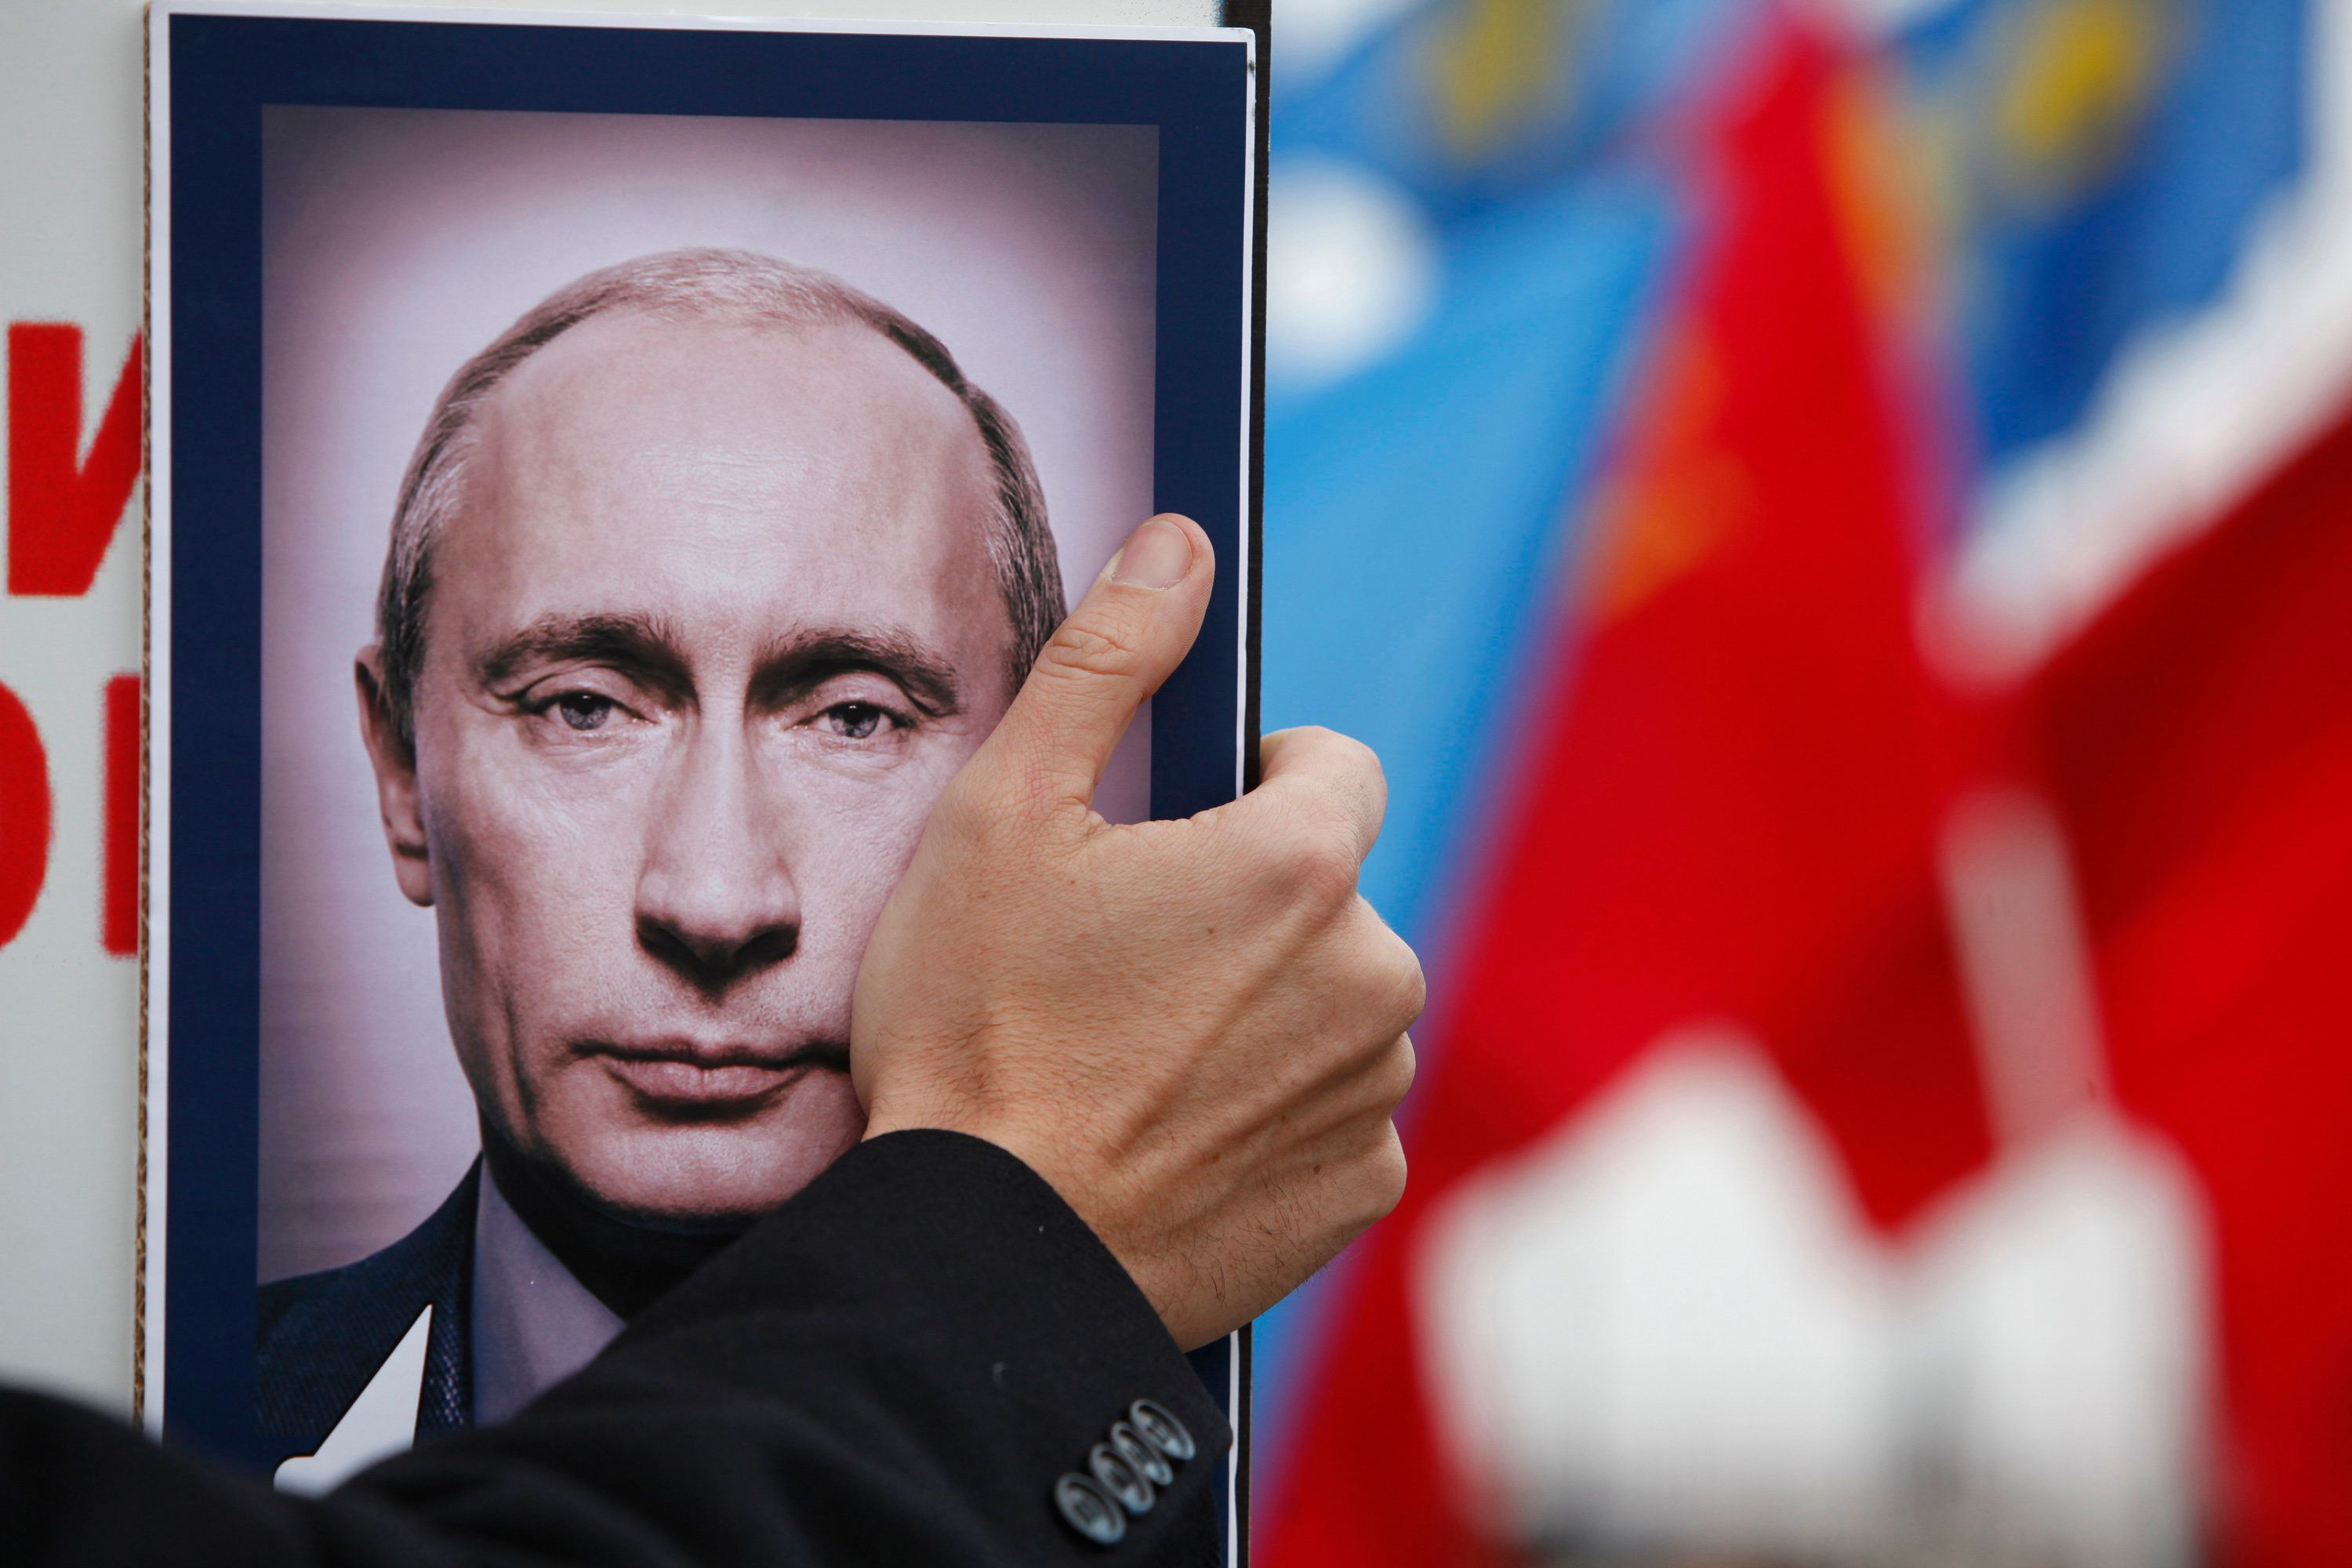 A man holds a portrait of Russia's Prime Minister Vladimir Putin during a rally to protest against violations at the parliamentary elections and the policies conducted by current Russian authorities in Russia's southern city of Stavropol, December 18, 2011. Russian Prime Minister Vladimir Putin's approval rating has dropped to its lowest level of the year in the first opinion poll published since his ruling party suffered an election setback and he faced the biggest protests of his 12-year rule. REUTERS/Eduard Korniyenko (RUSSIA - Tags: POLITICS CIVIL UNREST ELECTIONS TPX IMAGES OF THE DAY)